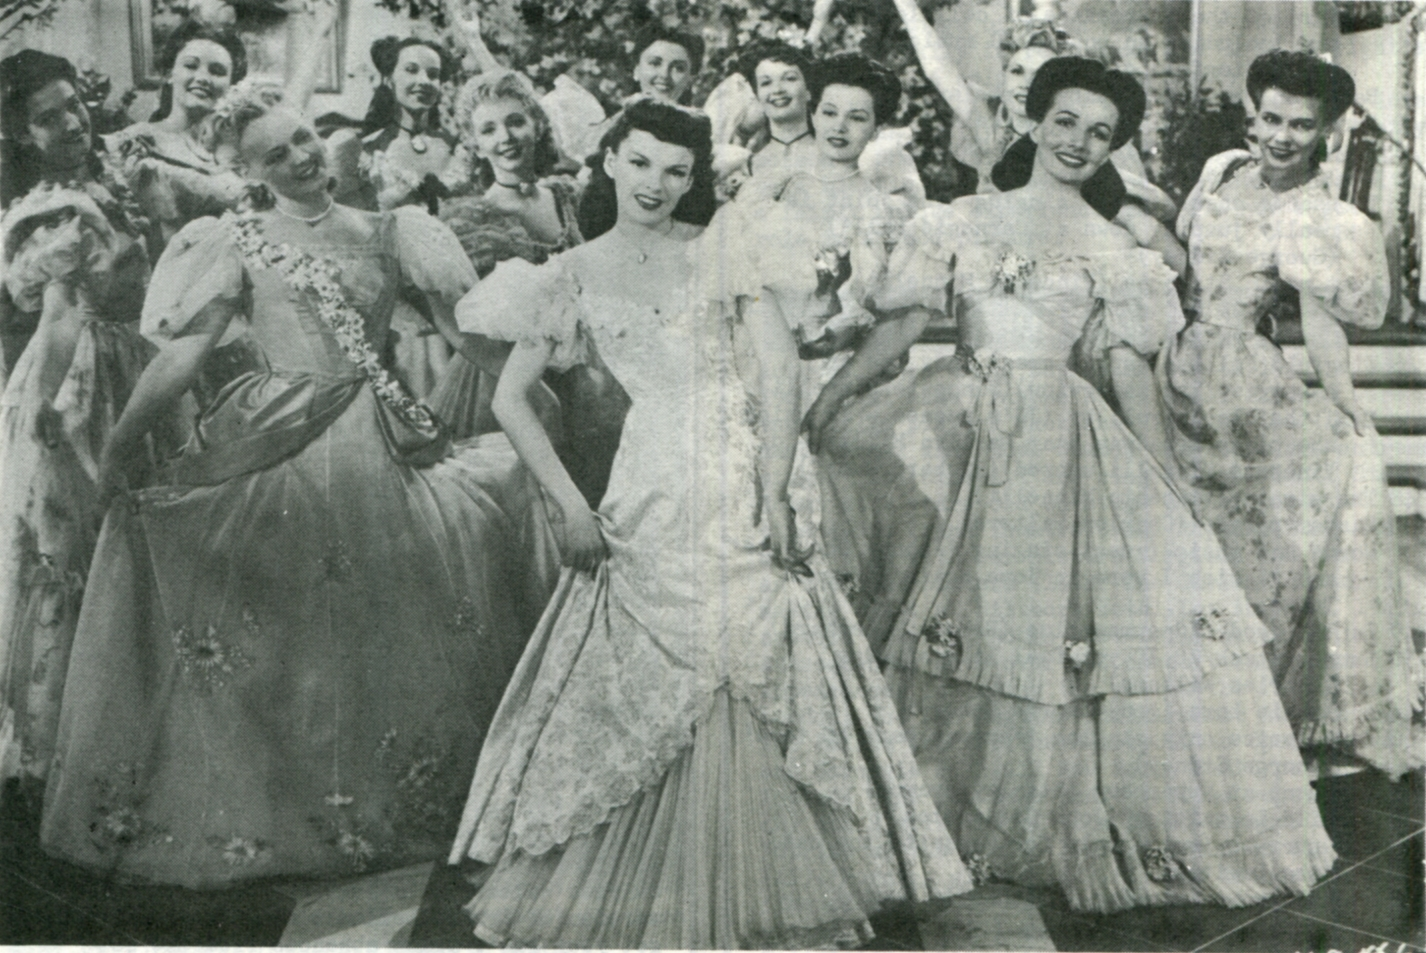 Judy Garland, Cyd Charisse, Jane Allen, Jean Ashton, Eleanor Bayley, Ruth Brady, Joan Carey, Lucille Casey, Virginia Davis, Dona Dax, Gwen Donovan, Mary Jo Ellis, Virginia Engels, Mary Jane French, Dorothy Raye, Virginia Gumm, Gloria Hope, Thelma Joel, Vera Lee, Mary Moder, Daphne Moore, Loulie Jean Norman, Virginia O'Brien, Shirley Patterson, Joan Thorsen, Dorothy Tuttle, Jacqueline White, Ruth Clark, Dorothy Wilkerson, Edith Motridge, Vivian Edwards, and Meredyth Durrell in The Harvey Girls (1946)